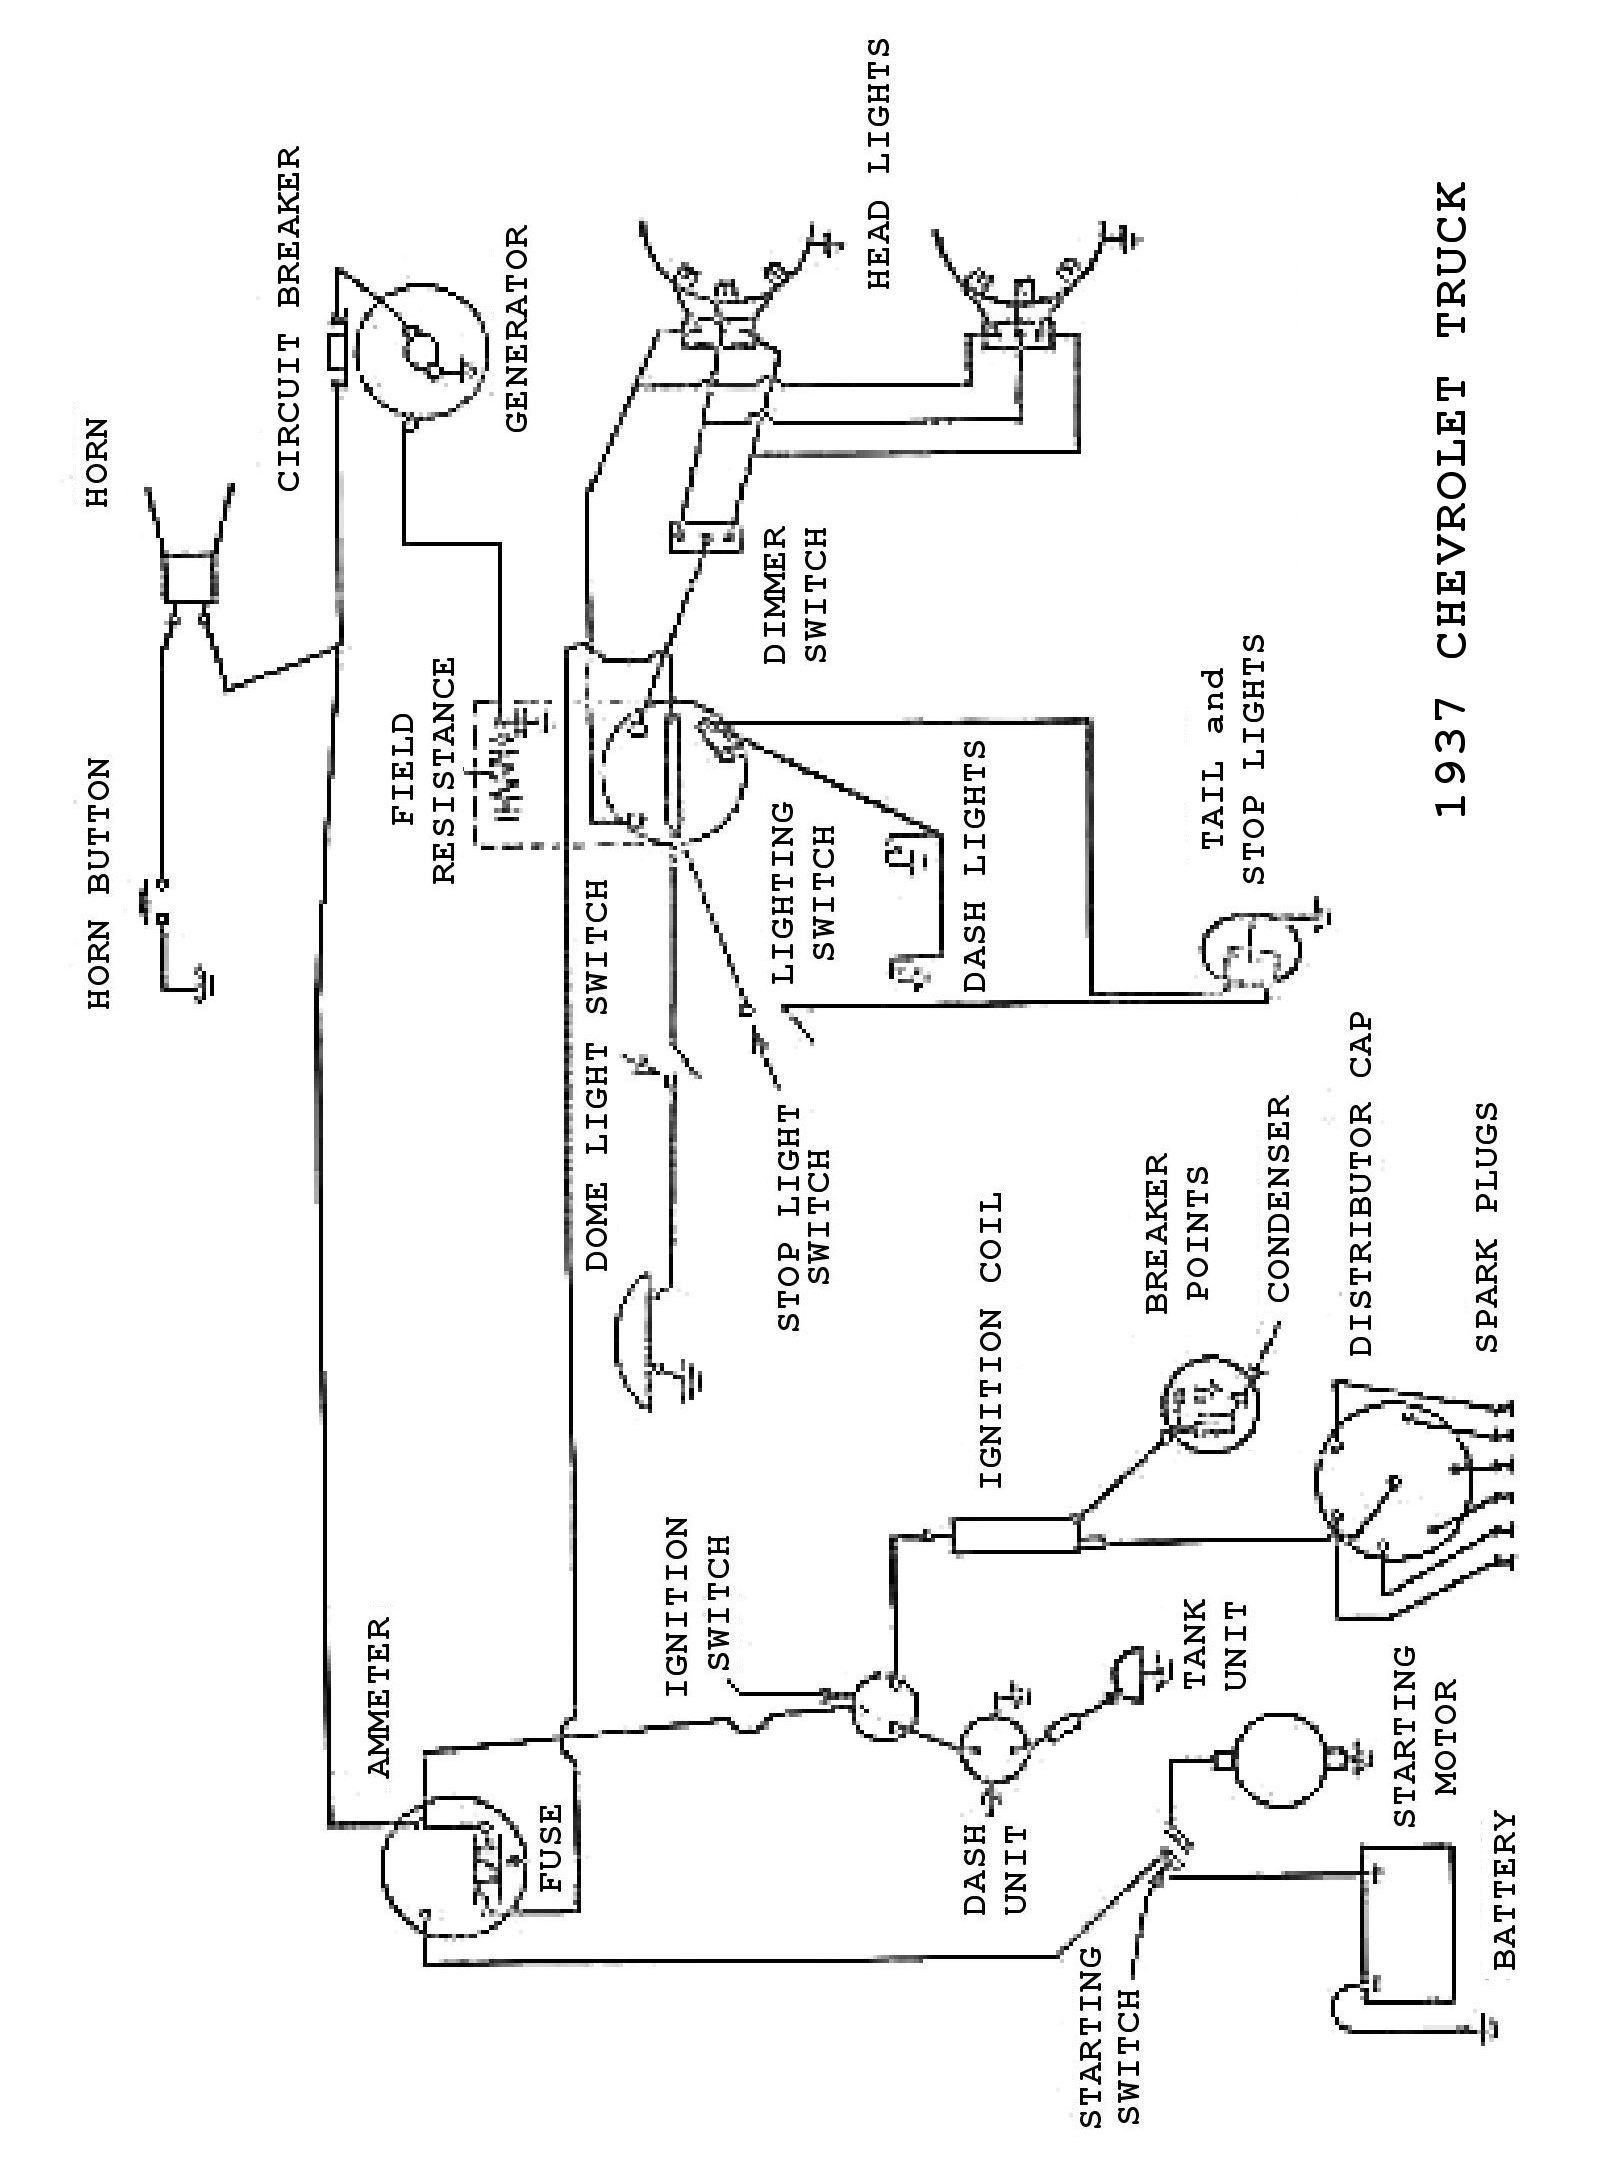 Chevy 216 Ignition Coil Wiring Diagram - wiring diagrams